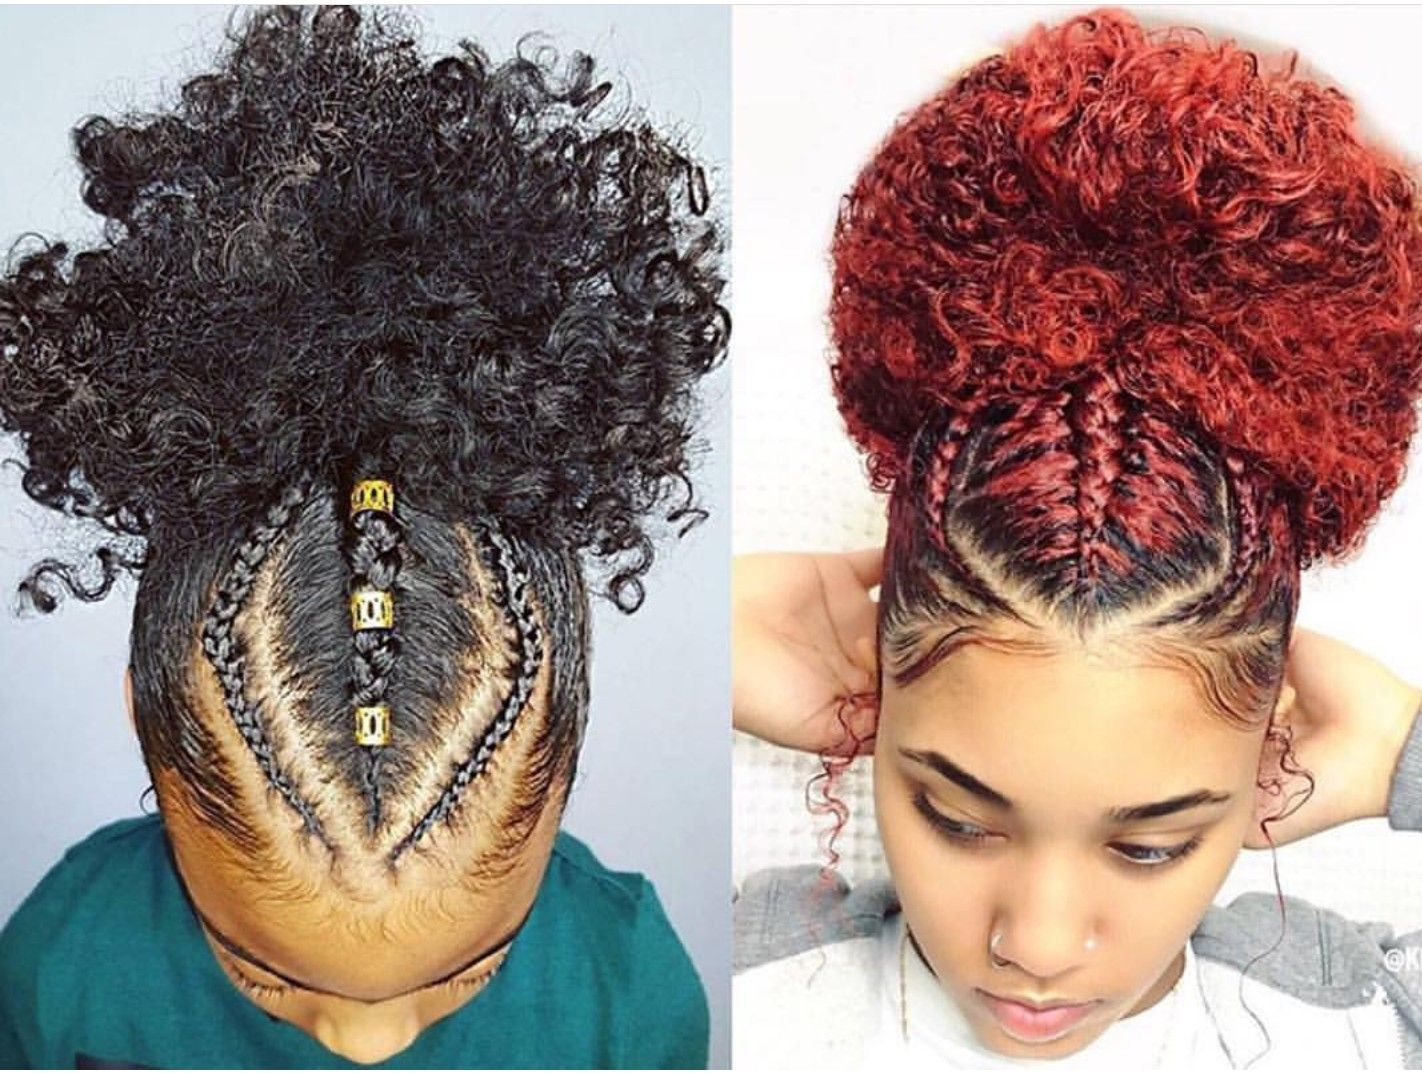 Three Braids Going Up Into A Ponytail Natural Hair Styles Easy Natural Hair Styles Black Girl Braided Hairstyles